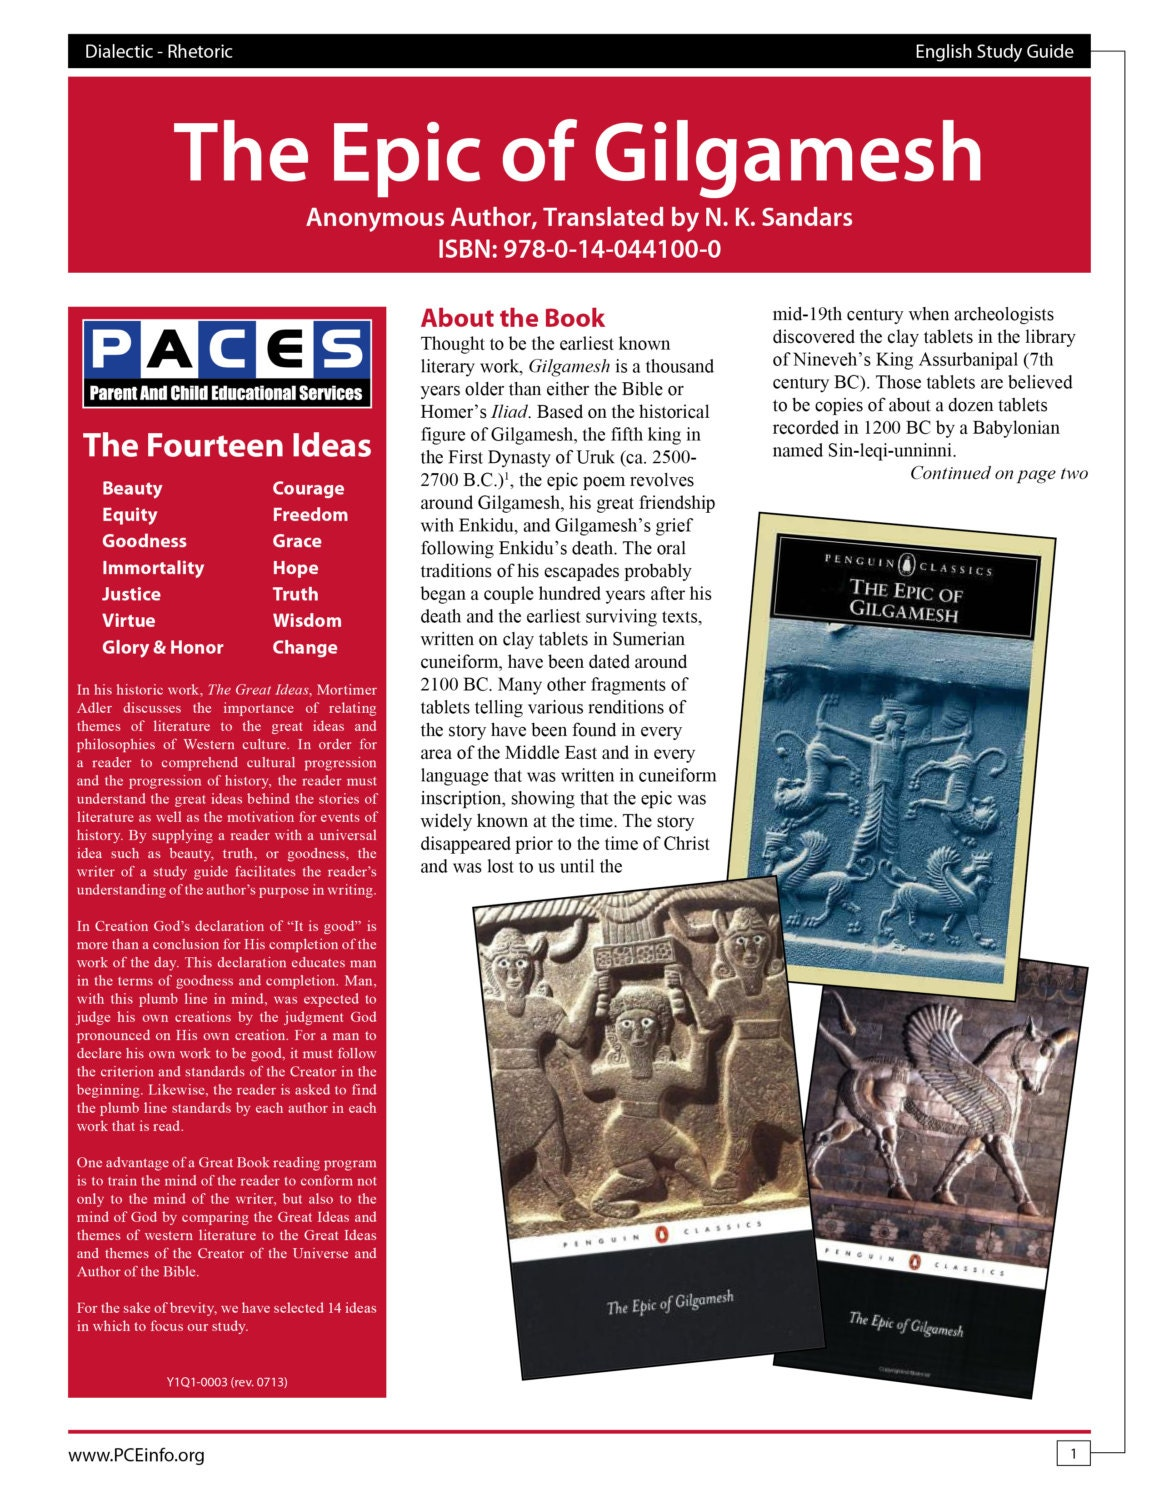 study of the epic of gilgamesh Sparknotes - gilgamesh - download as pdf file (pdf), text file (txt) or read online.